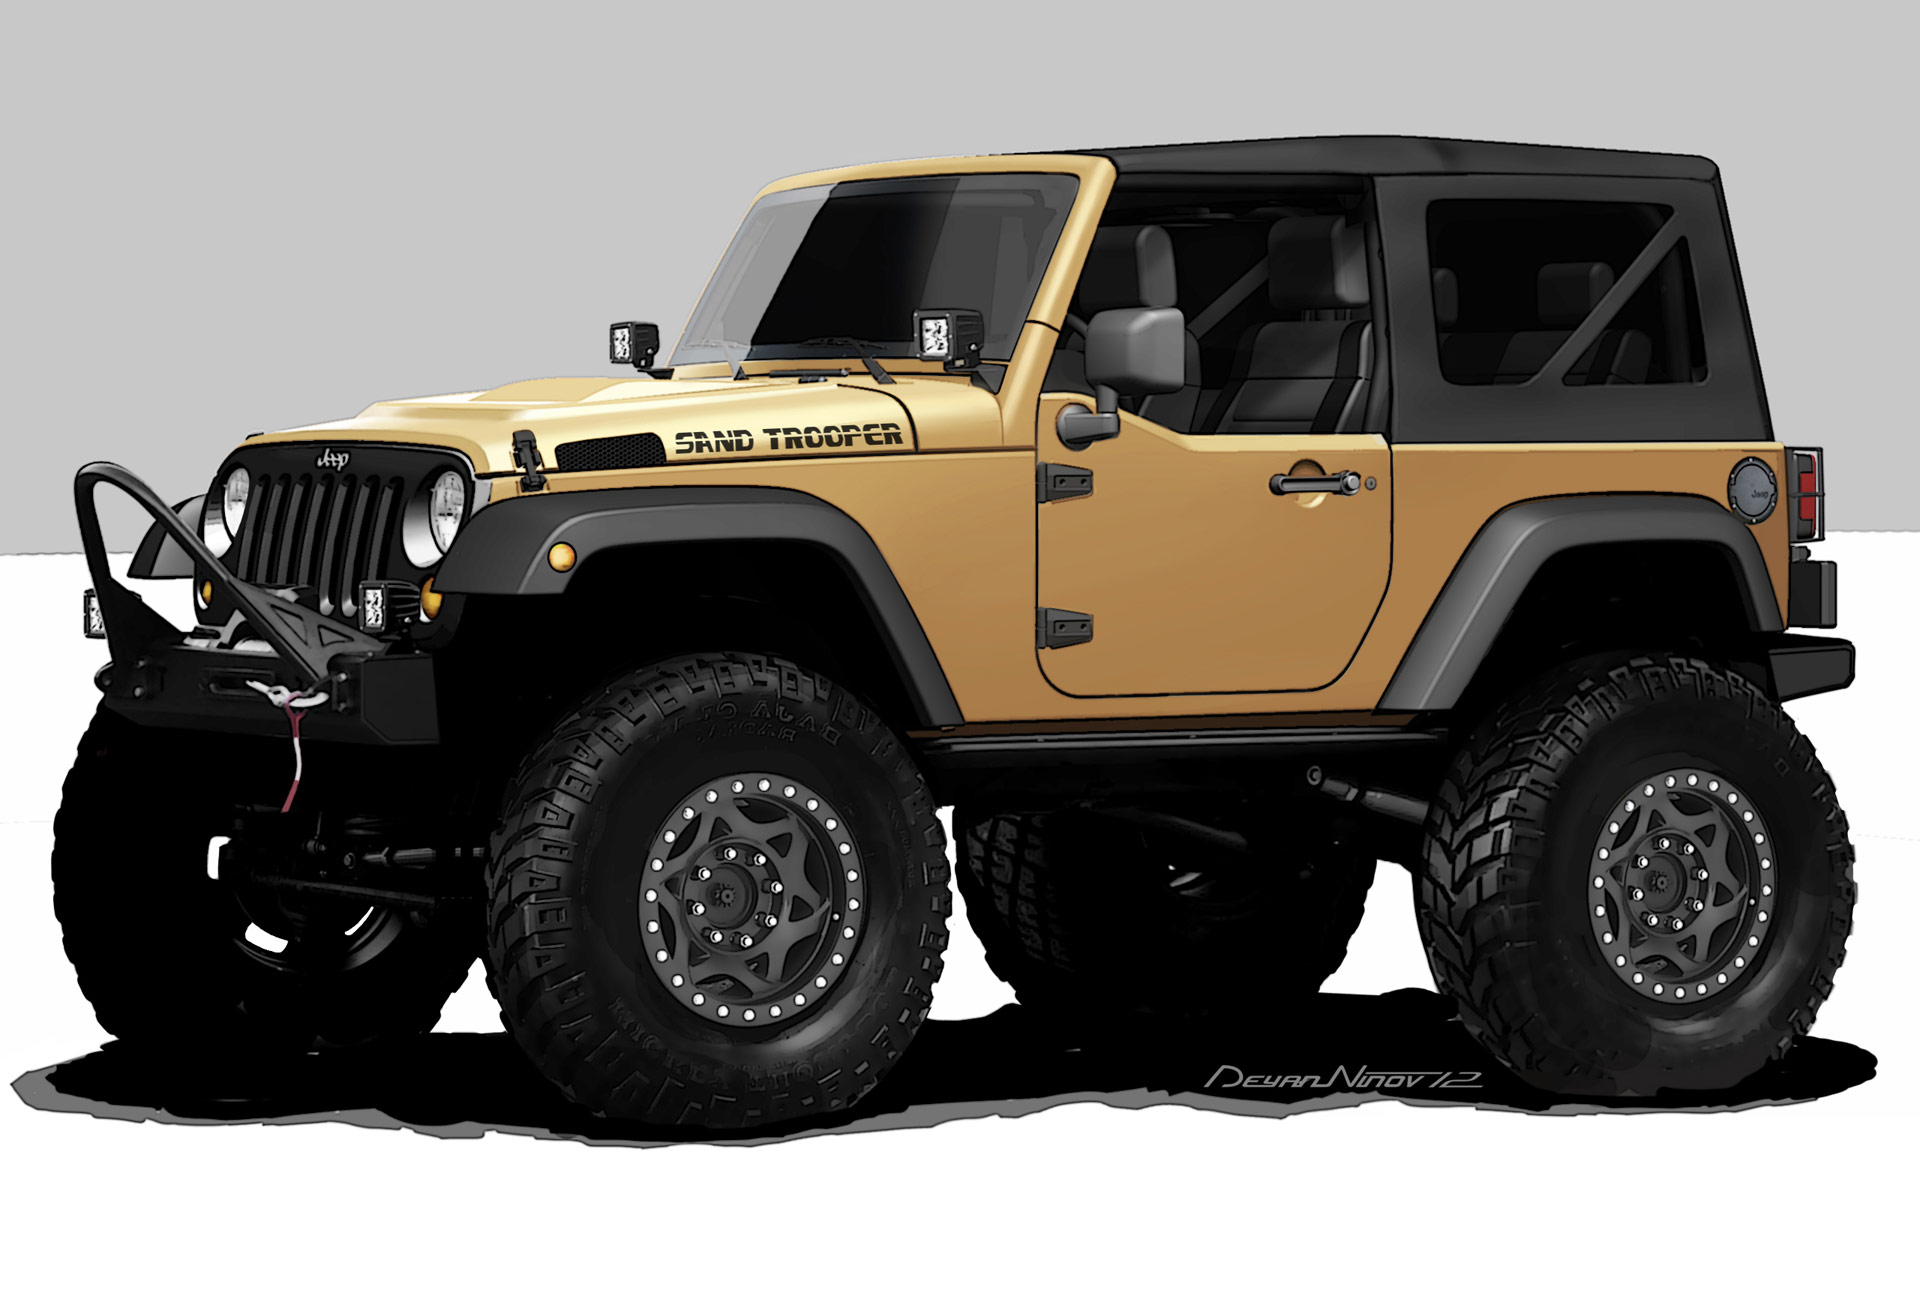 2012 jeep wrangler sand trooper news and information. Black Bedroom Furniture Sets. Home Design Ideas